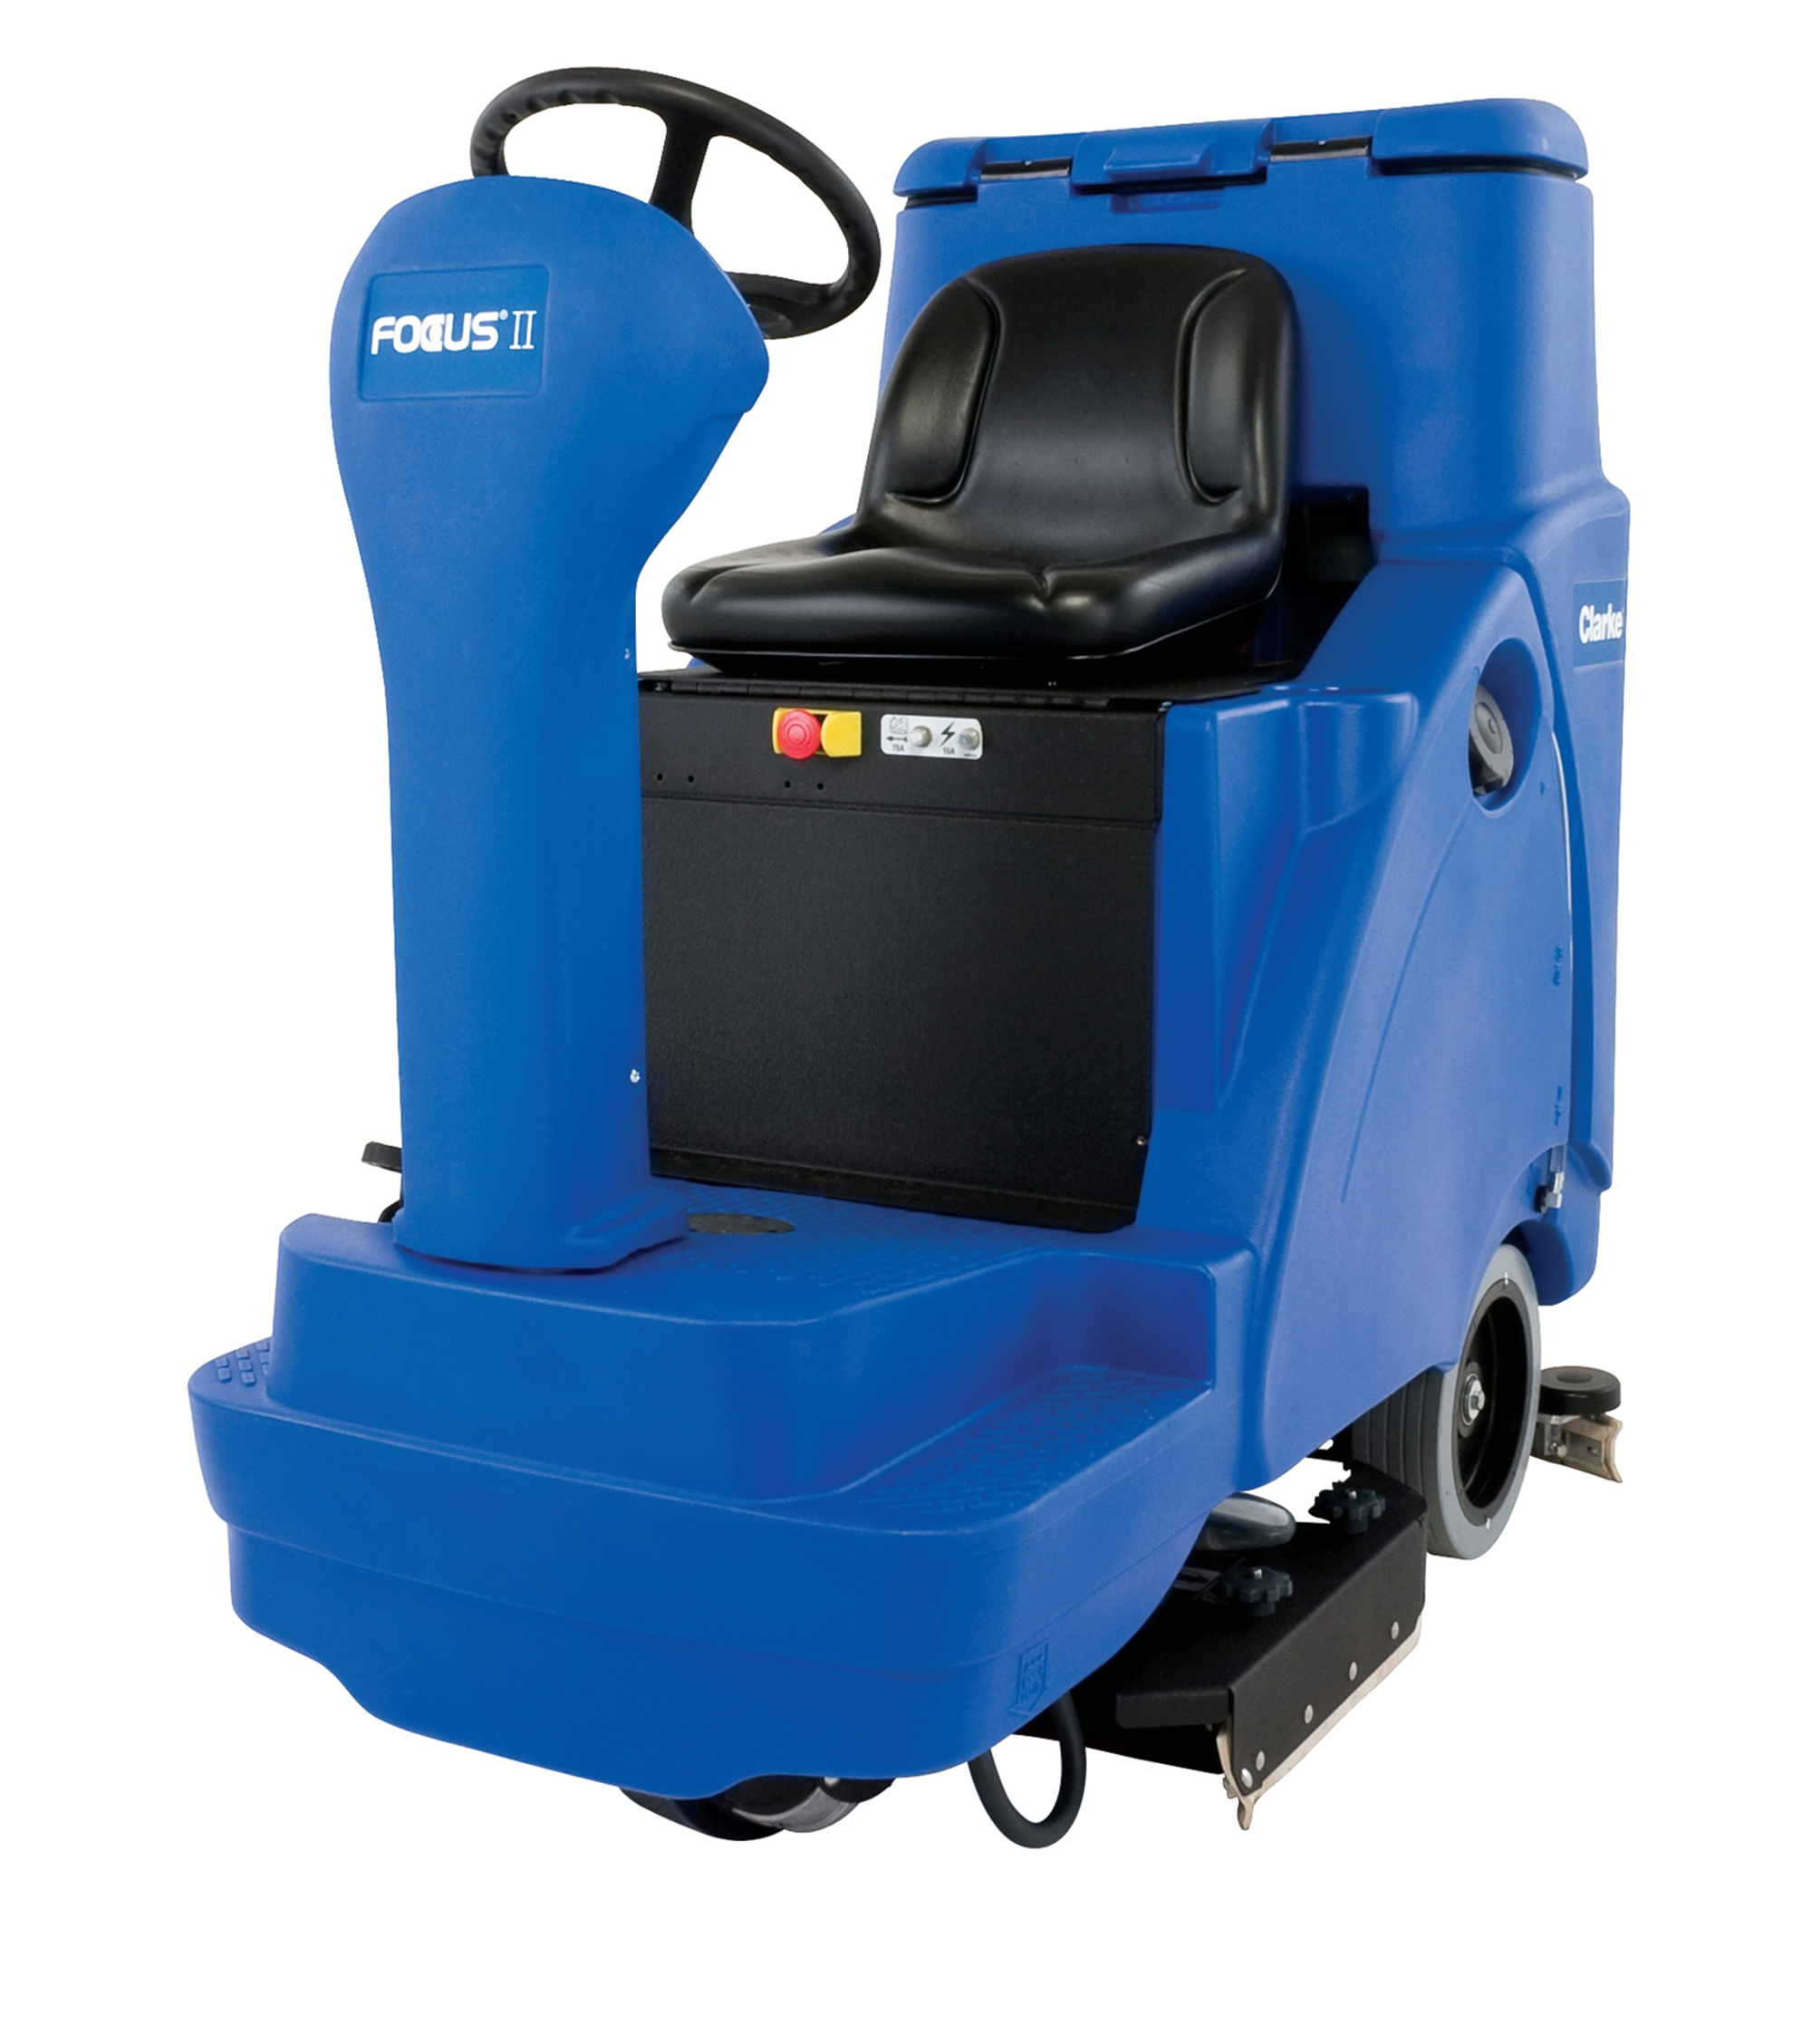 Product, Floor Cleaning, Scrubbers, Rider Scrubbers, Nilfisk, FOCUS II R 28B A312 OBC PH